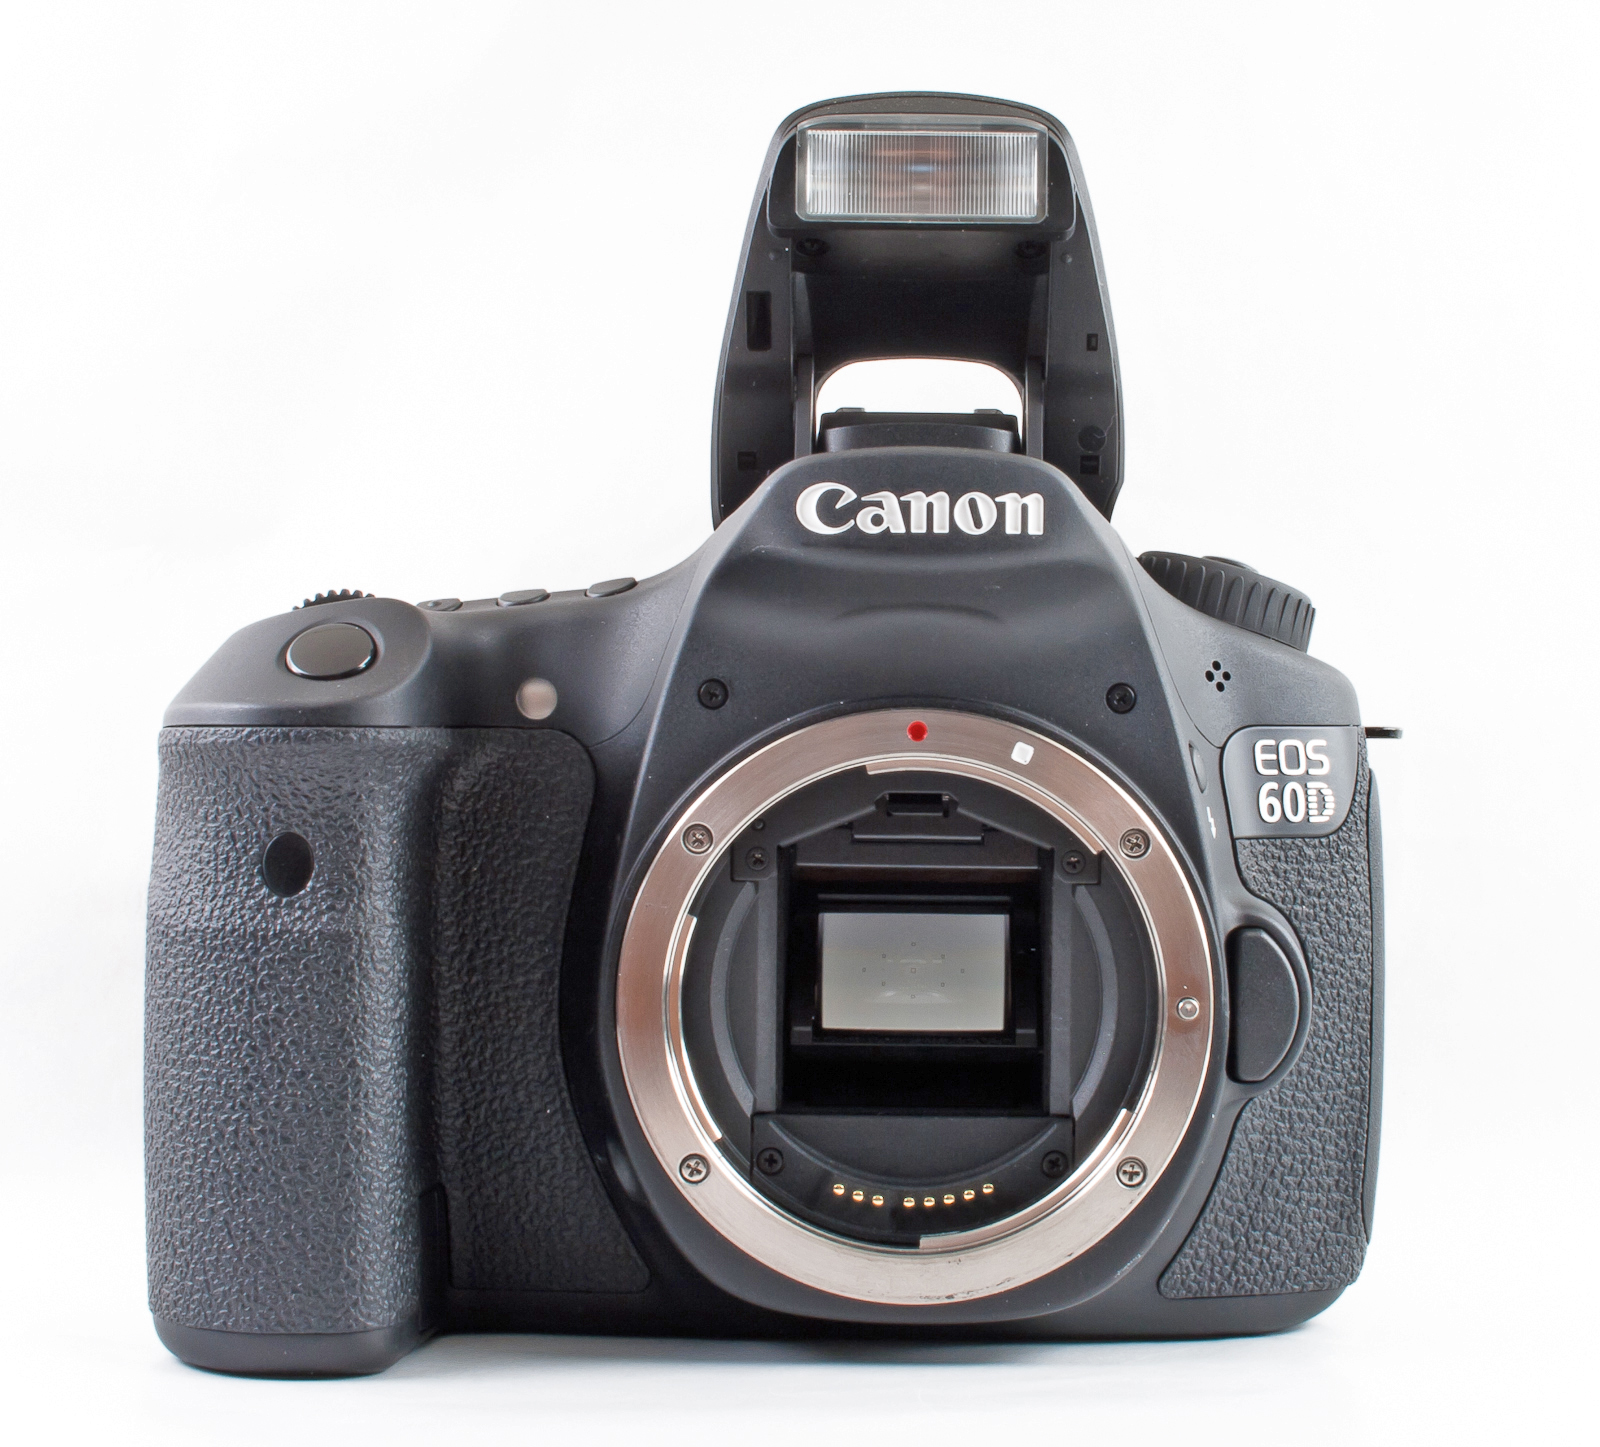 Description canon eos 60d without lens